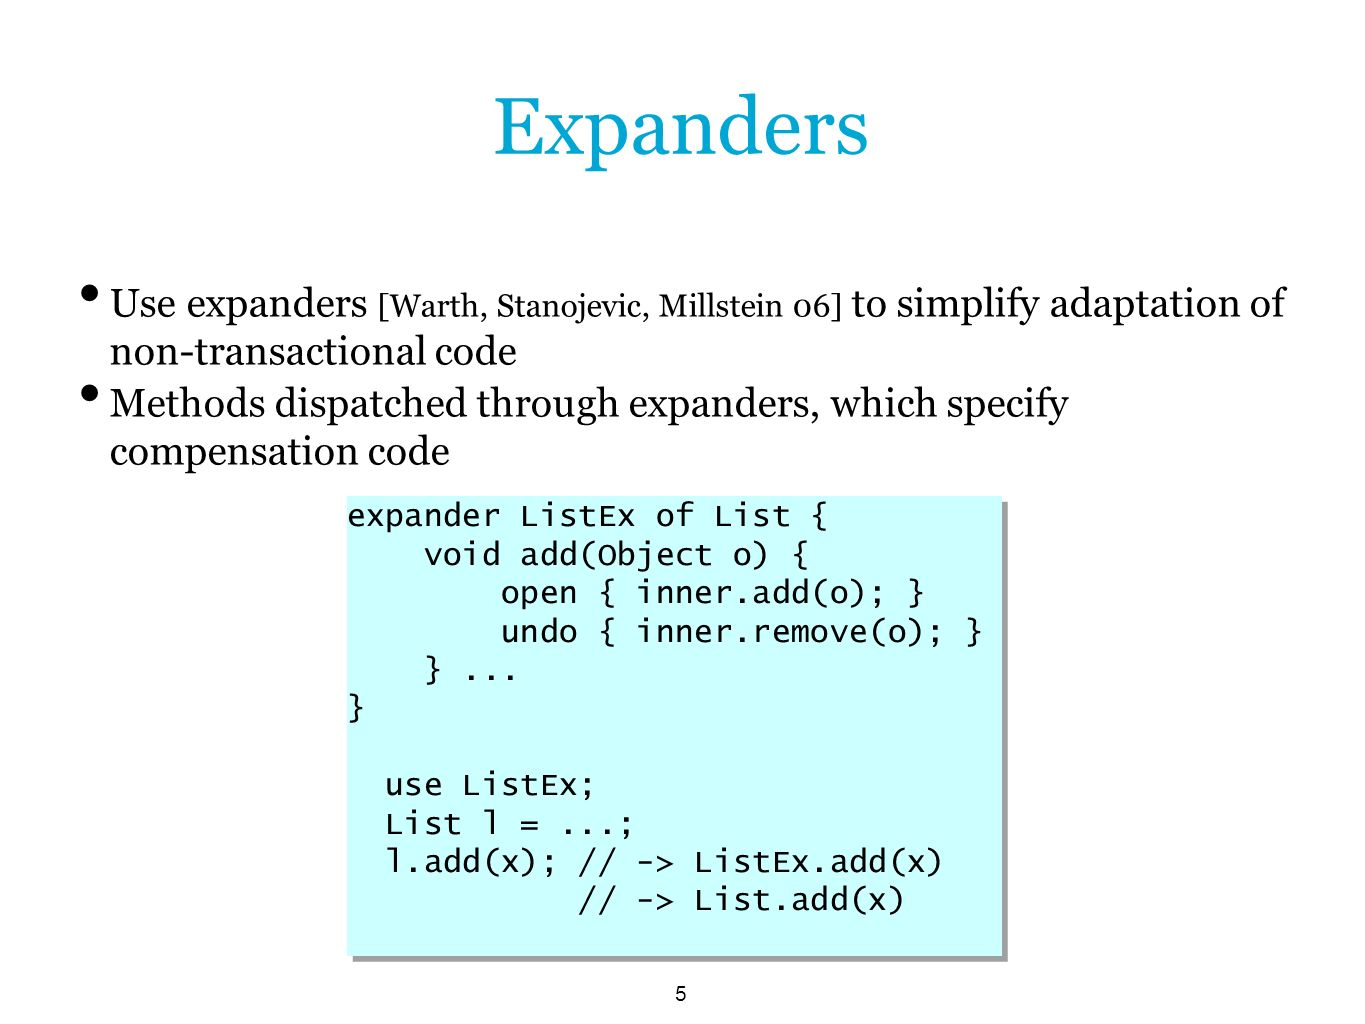 5 Expanders Use expanders [Warth, Stanojevic, Millstein 06] to simplify adaptation of non-transactional code Methods dispatched through expanders, which specify compensation code expander ListEx of List { void add(Object o) { open { inner.add(o); } undo { inner.remove(o); } }...